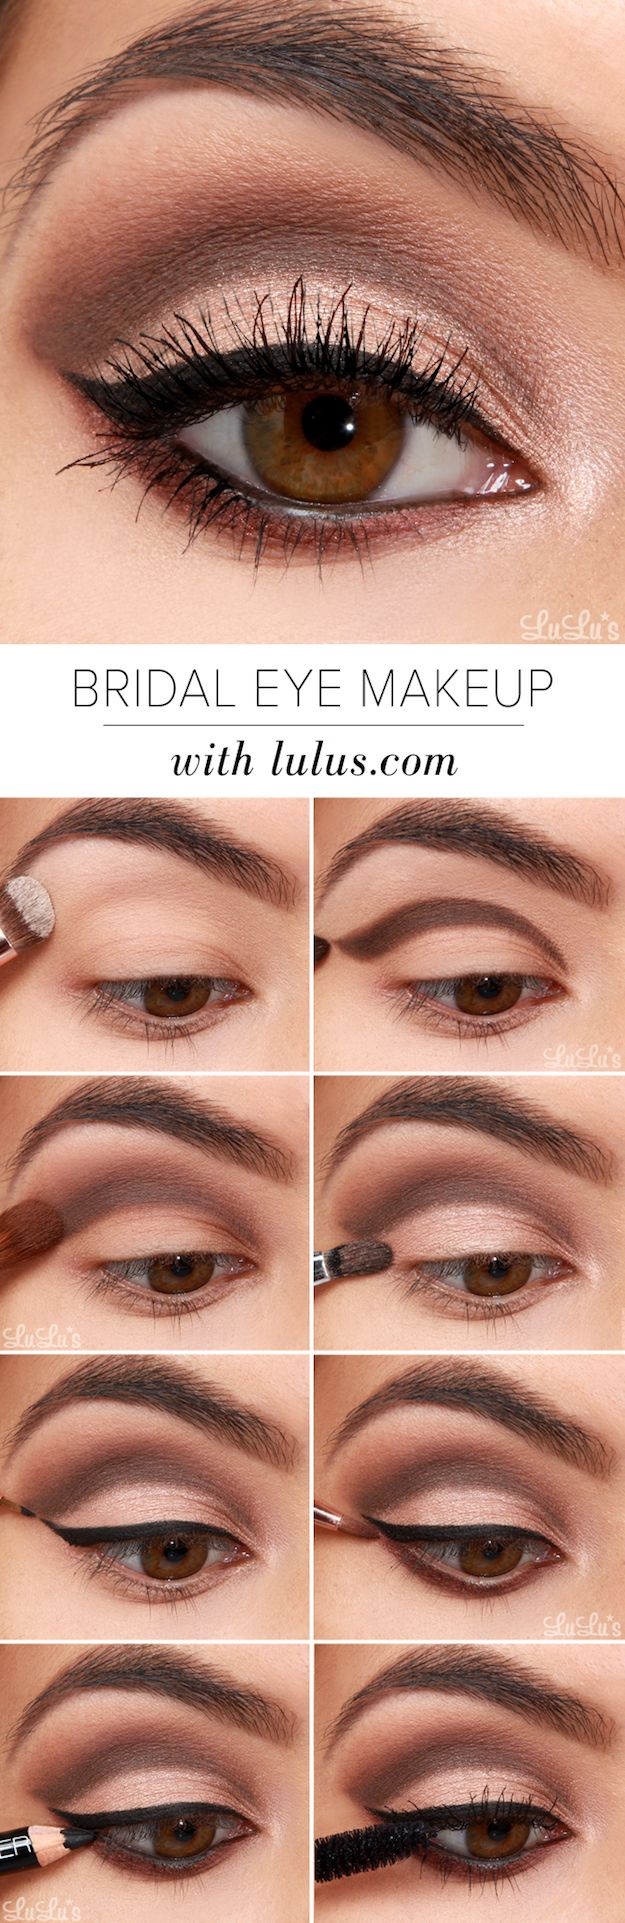 31 Makeup Tutorials for Brown Eyes - Bridal Eye Makeup Tutorial -Great Step by Step Tutorials and Videos for Beginners and Ideas for Makeup for Brown Eyes -Natural Everyday Looks -Smokey Prom and Wedding Looks -Eyeshadow and Eyeliner Looks for night